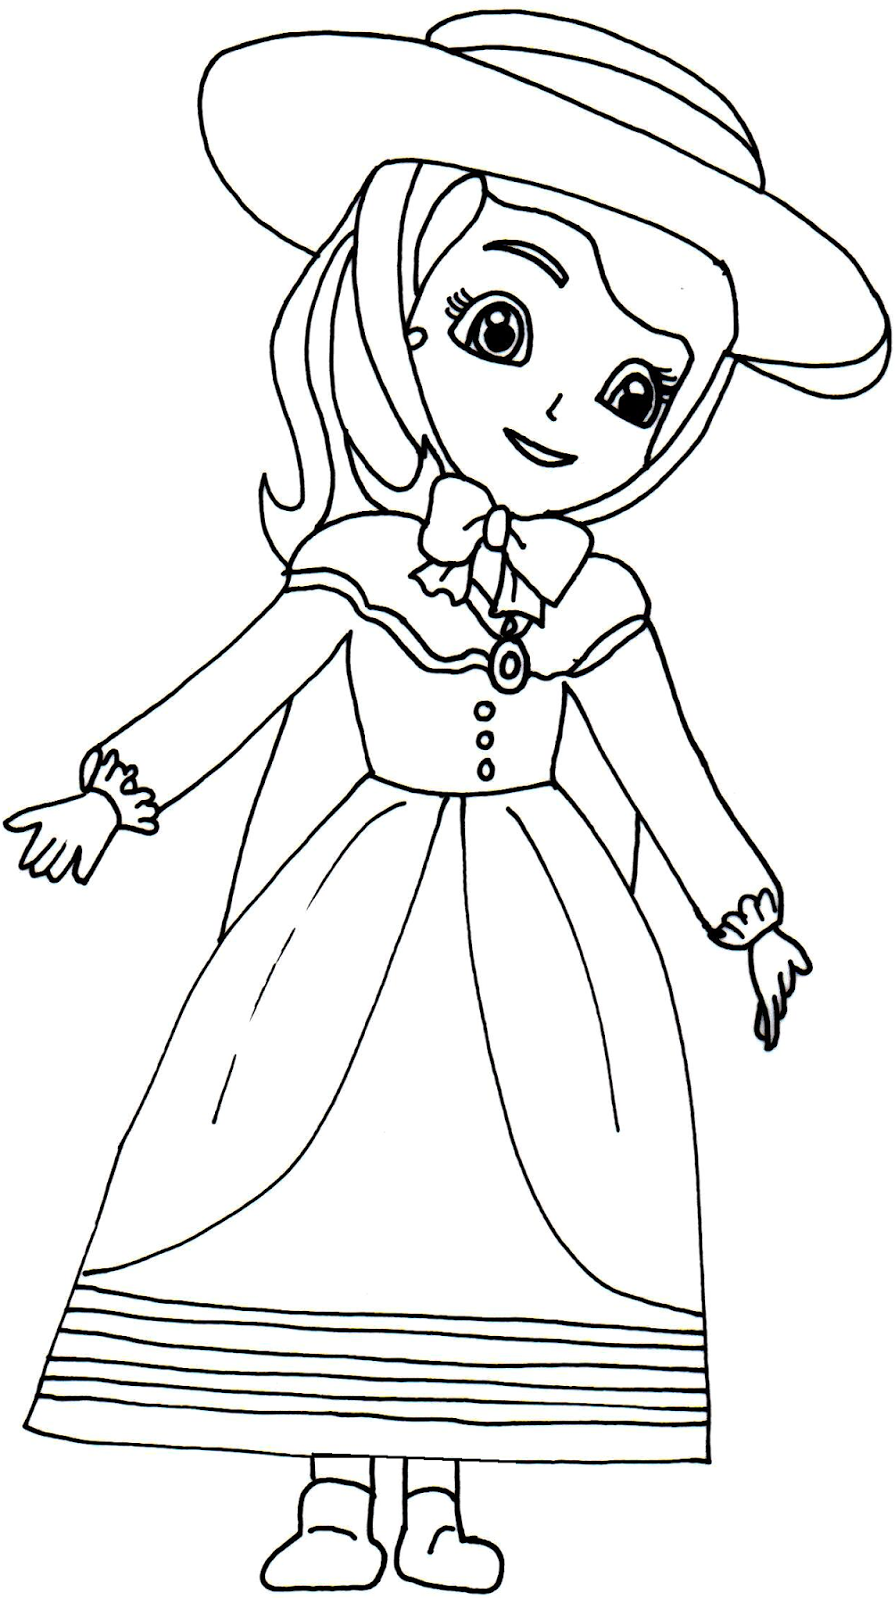 auntie xiuzhen coloring book pages - photo#47